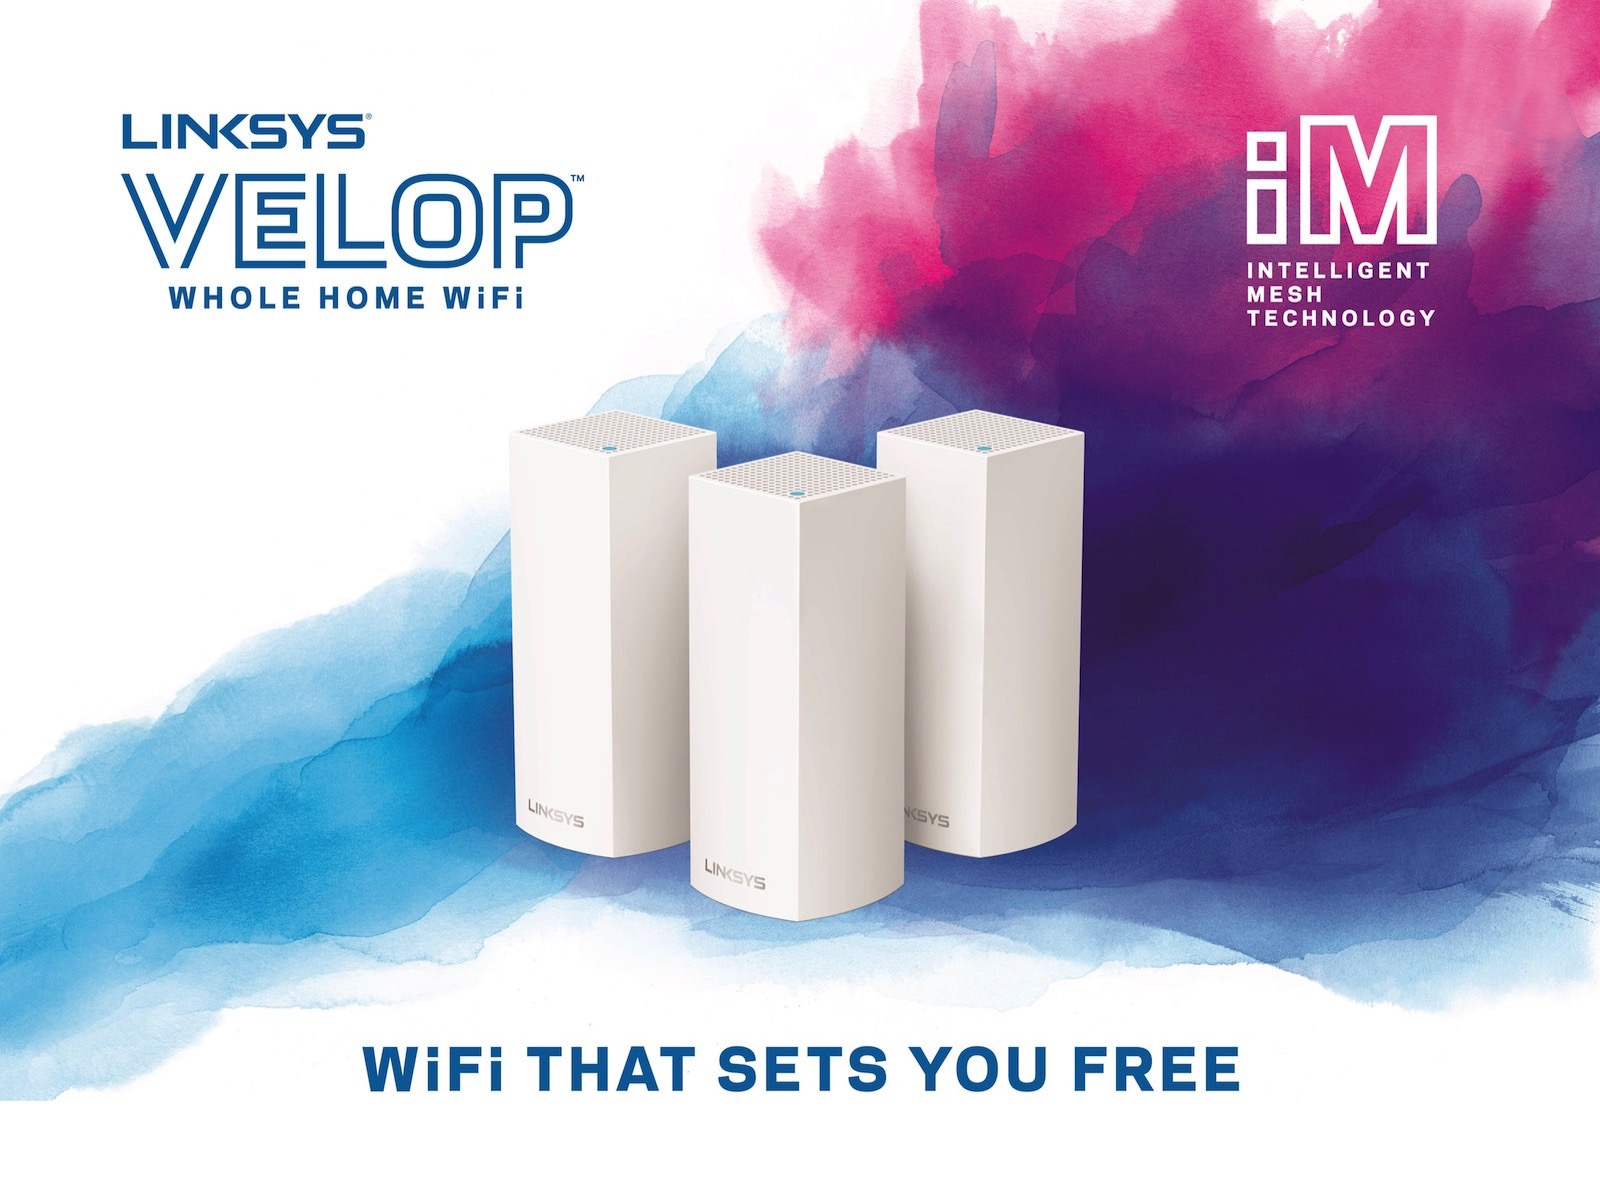 Linksys-Velop-WiFi-Router-1.jpg